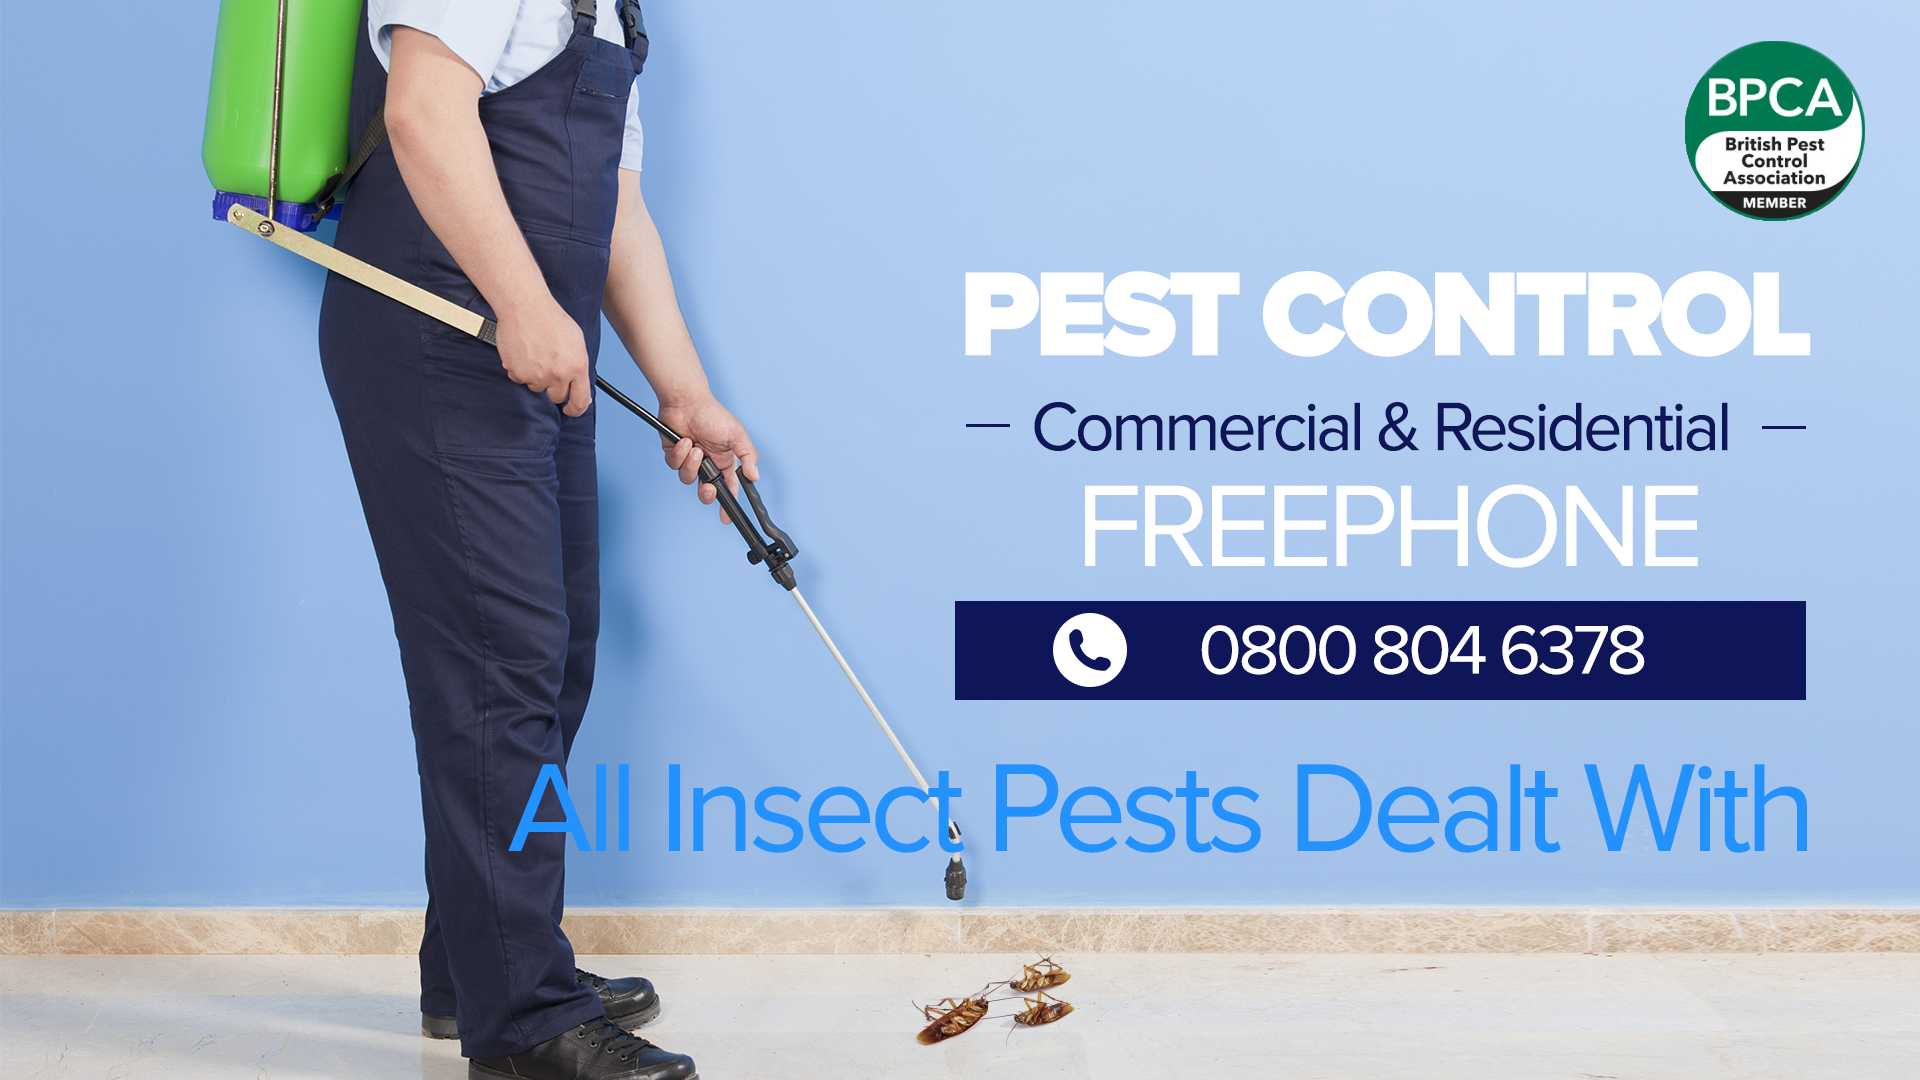 insect control lancashire